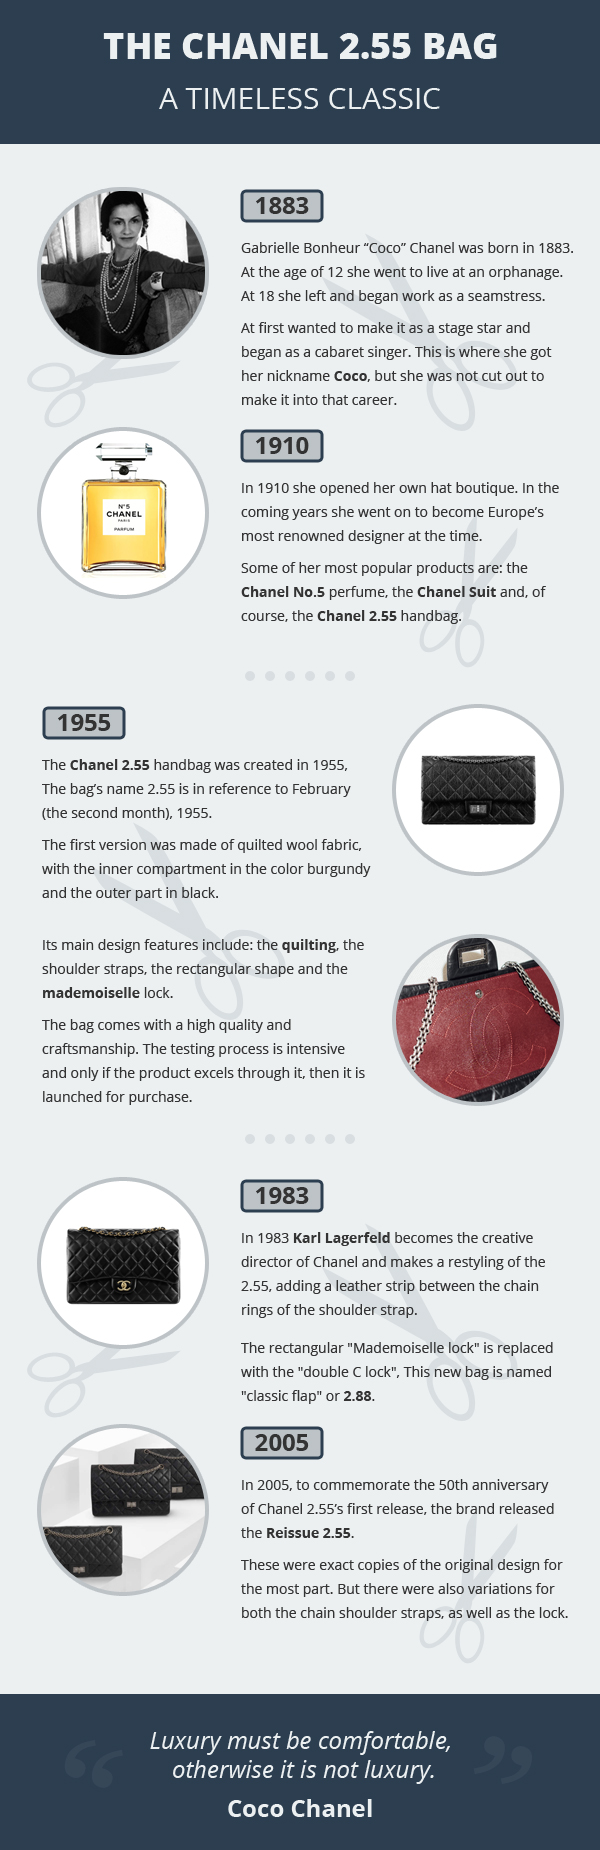 Chanel 2.55 Bag - Infographic